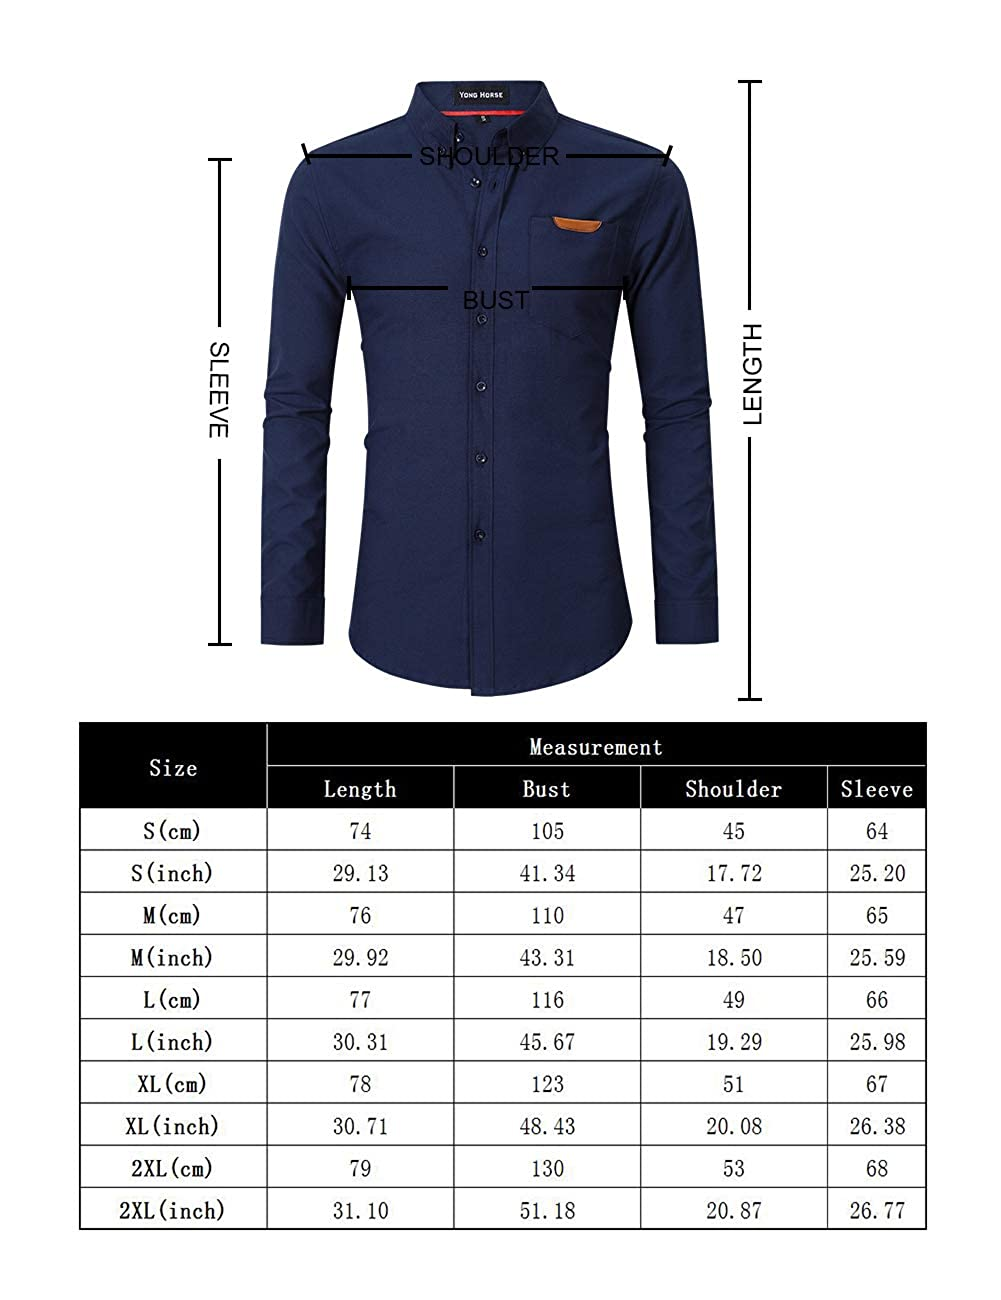 X-Large, Black Mens Casual Slim Fit Button Down Dress Shirt Long Sleeve Solid Oxford Shirt